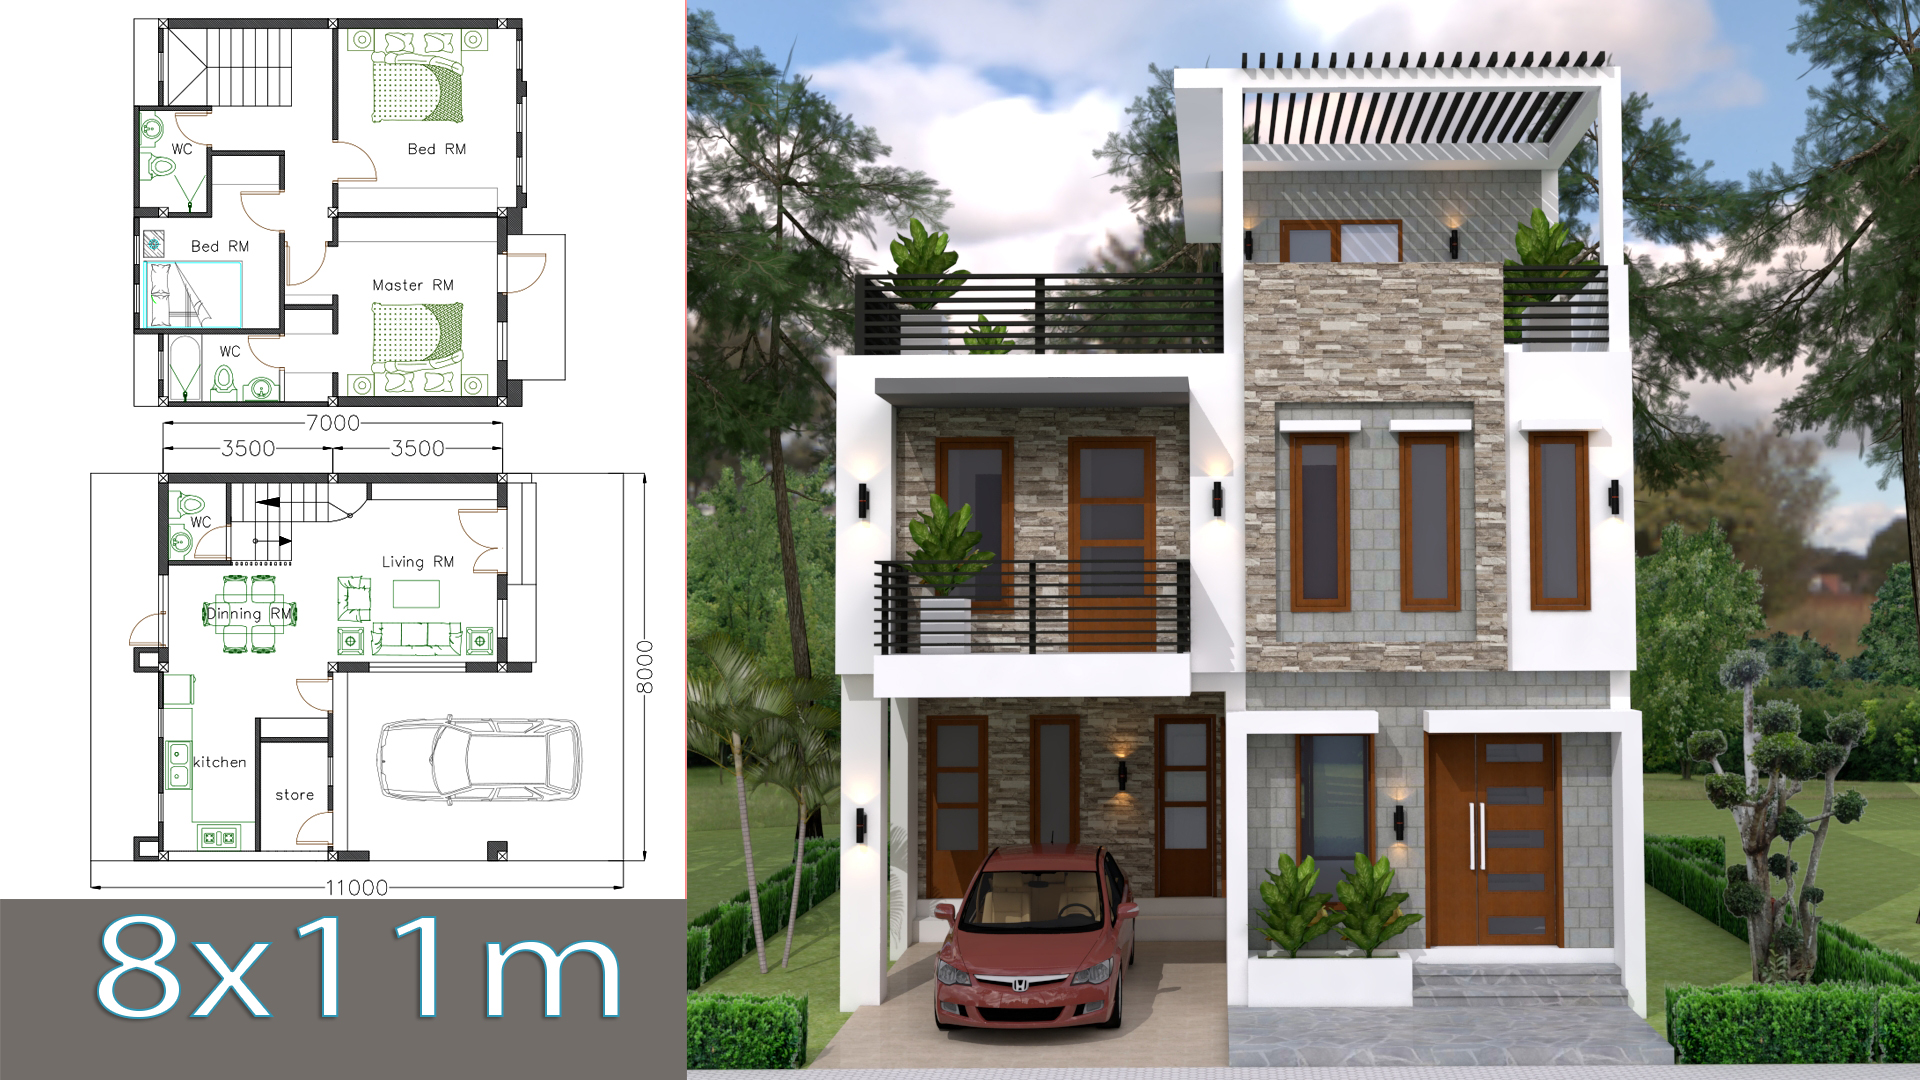 House Plans 8x11m With 3 Bedrooms